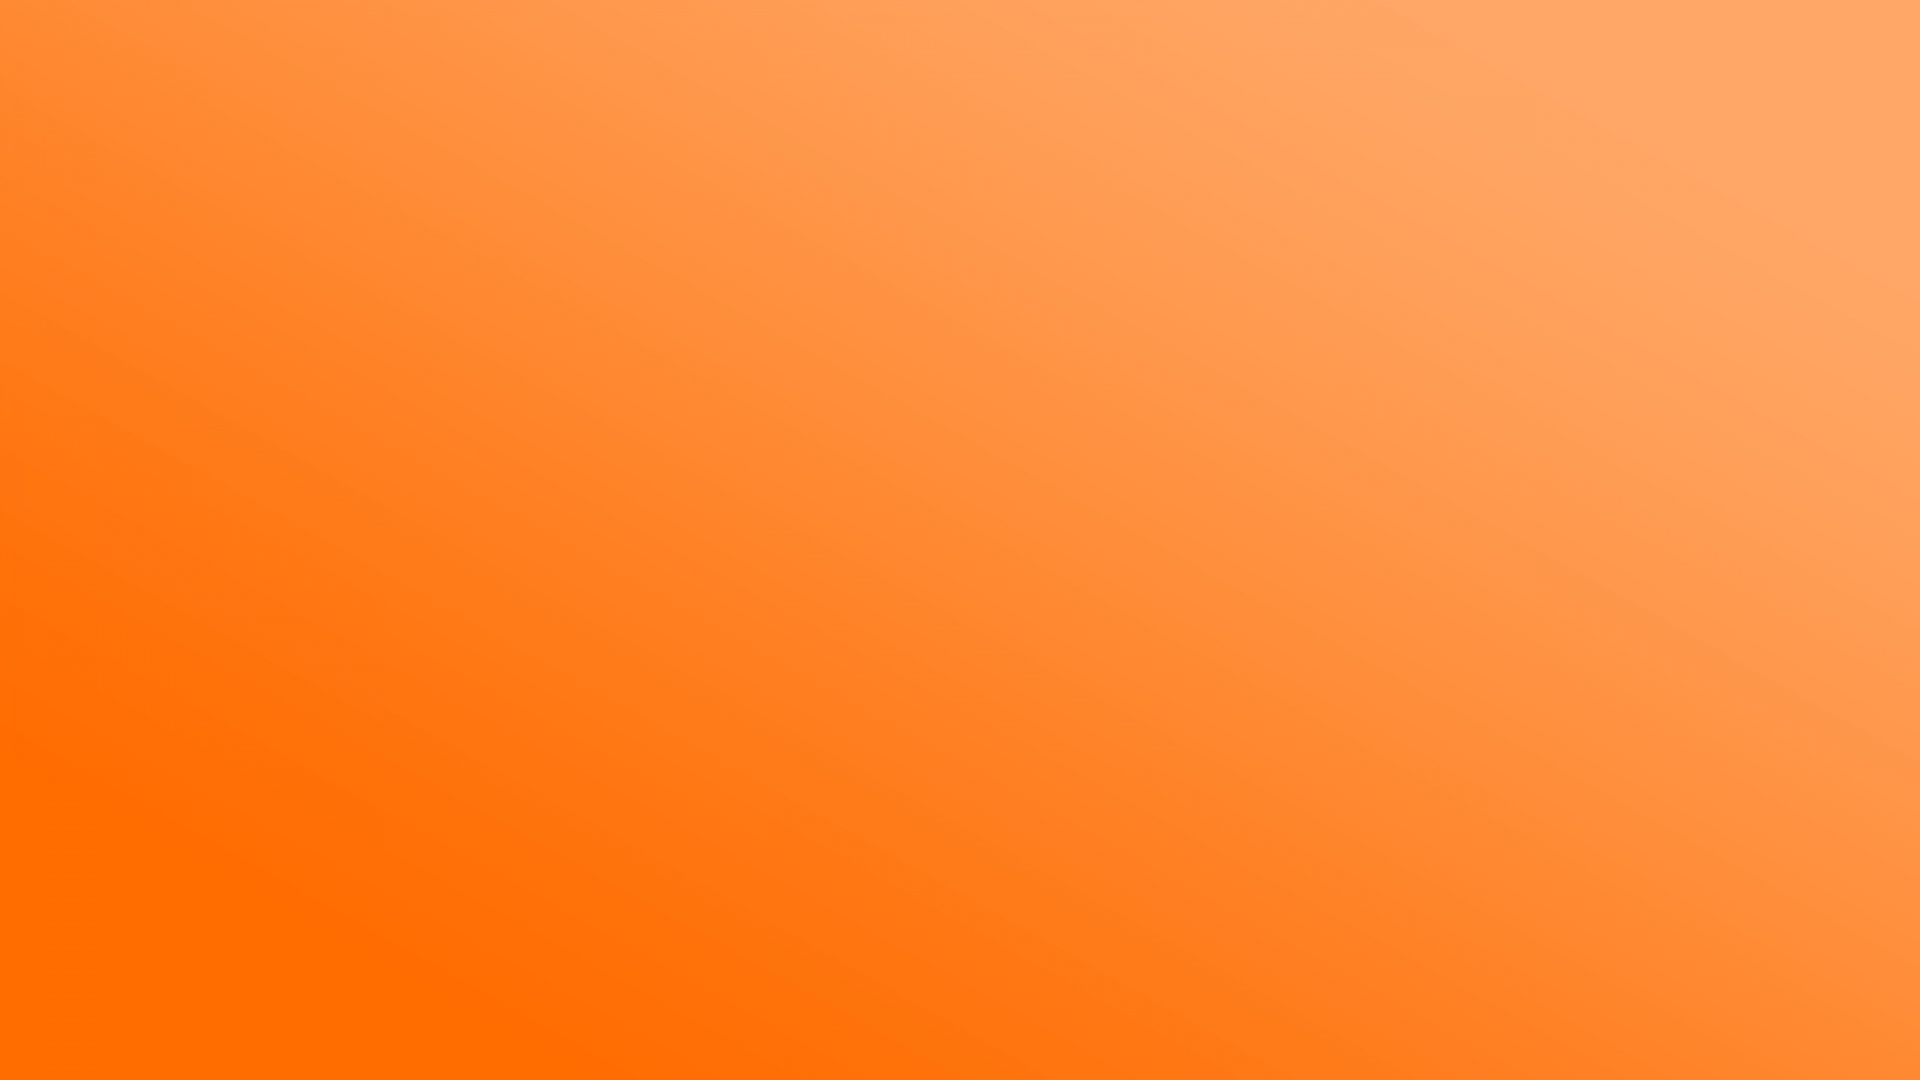 Download Wallpaper 1920x1080 orange, white, solid